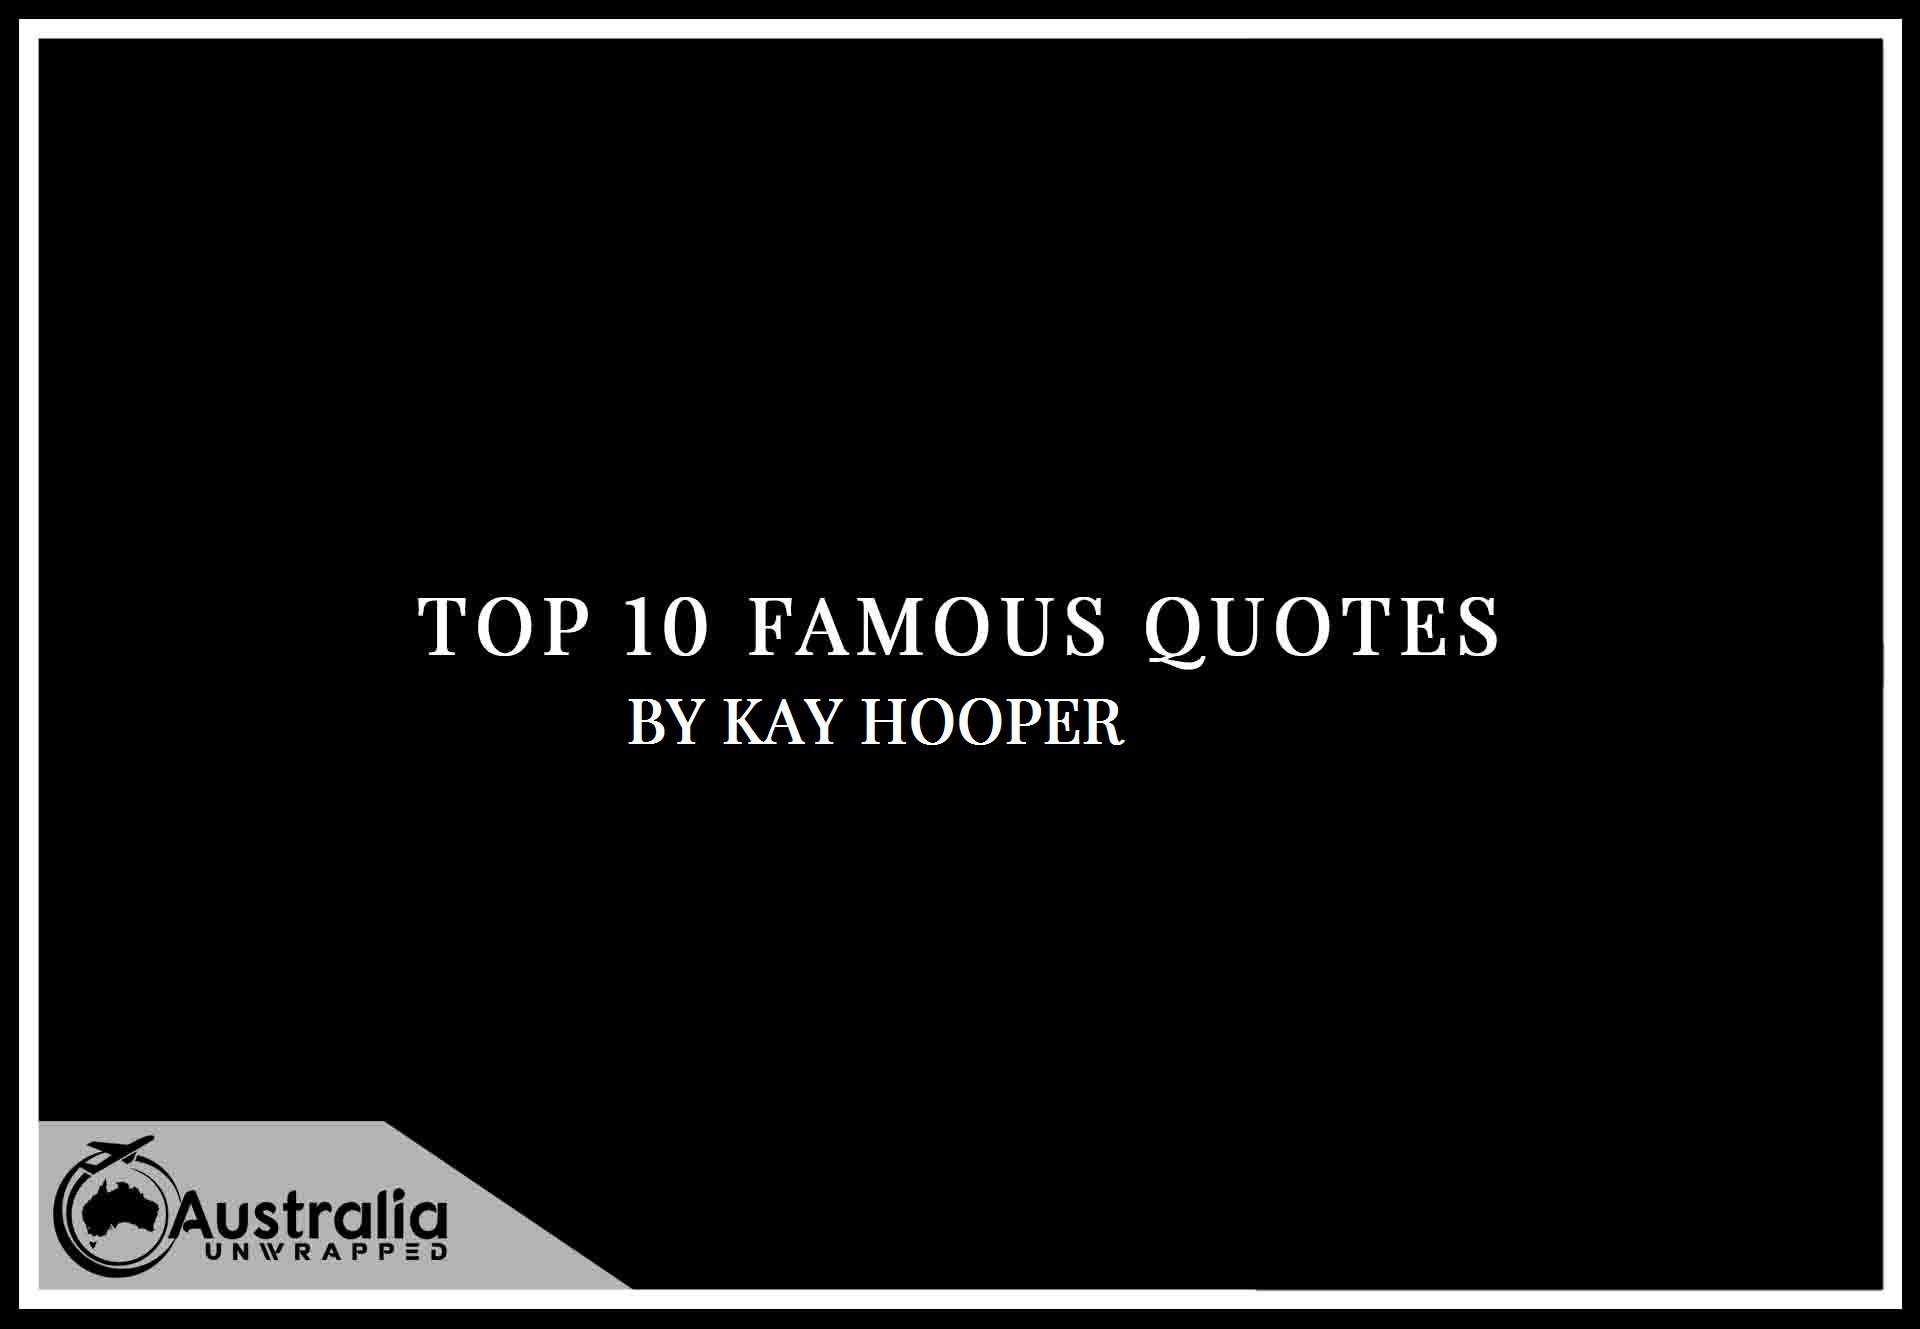 Kay Hooper's Top 10 Popular and Famous Quotes